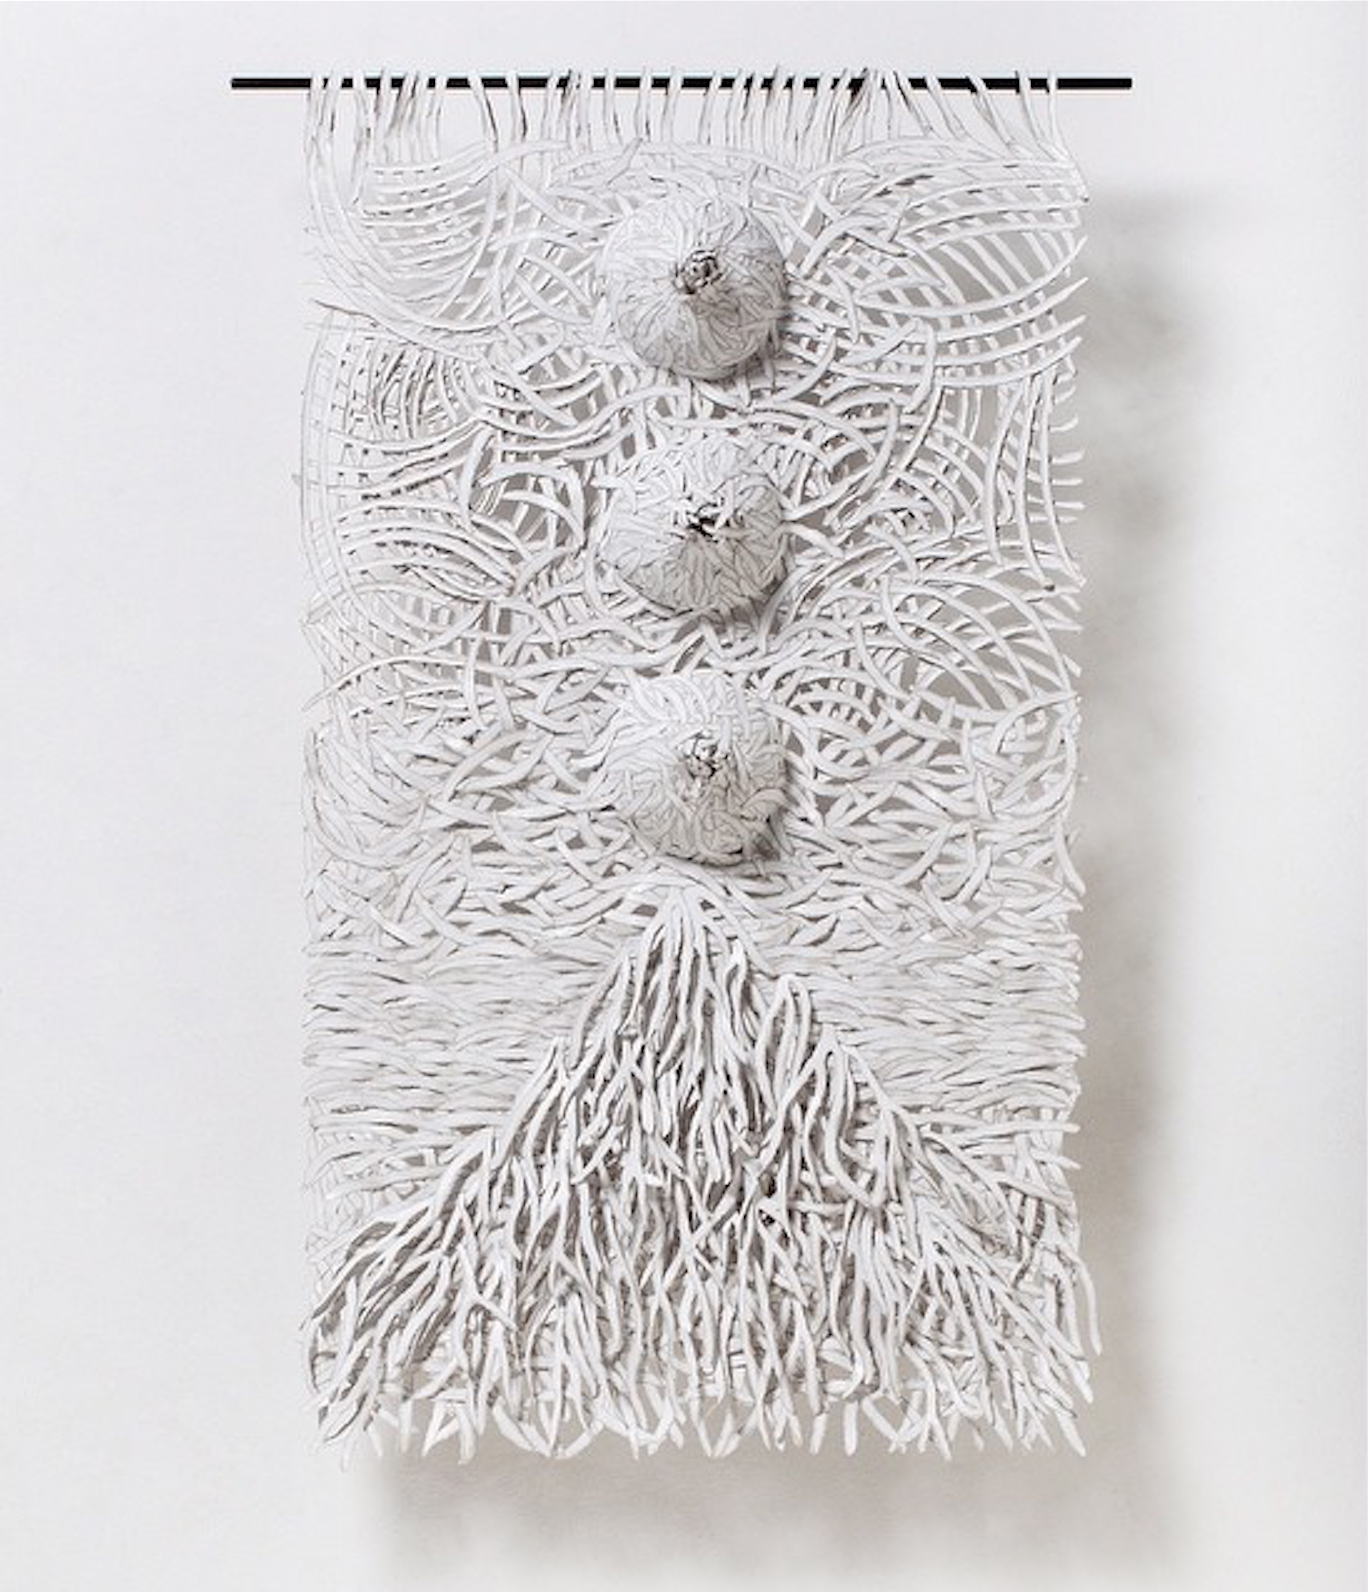 Textural Monochrome Hand-Torn Paper Tapestries Inspired by Nature - Uprooted